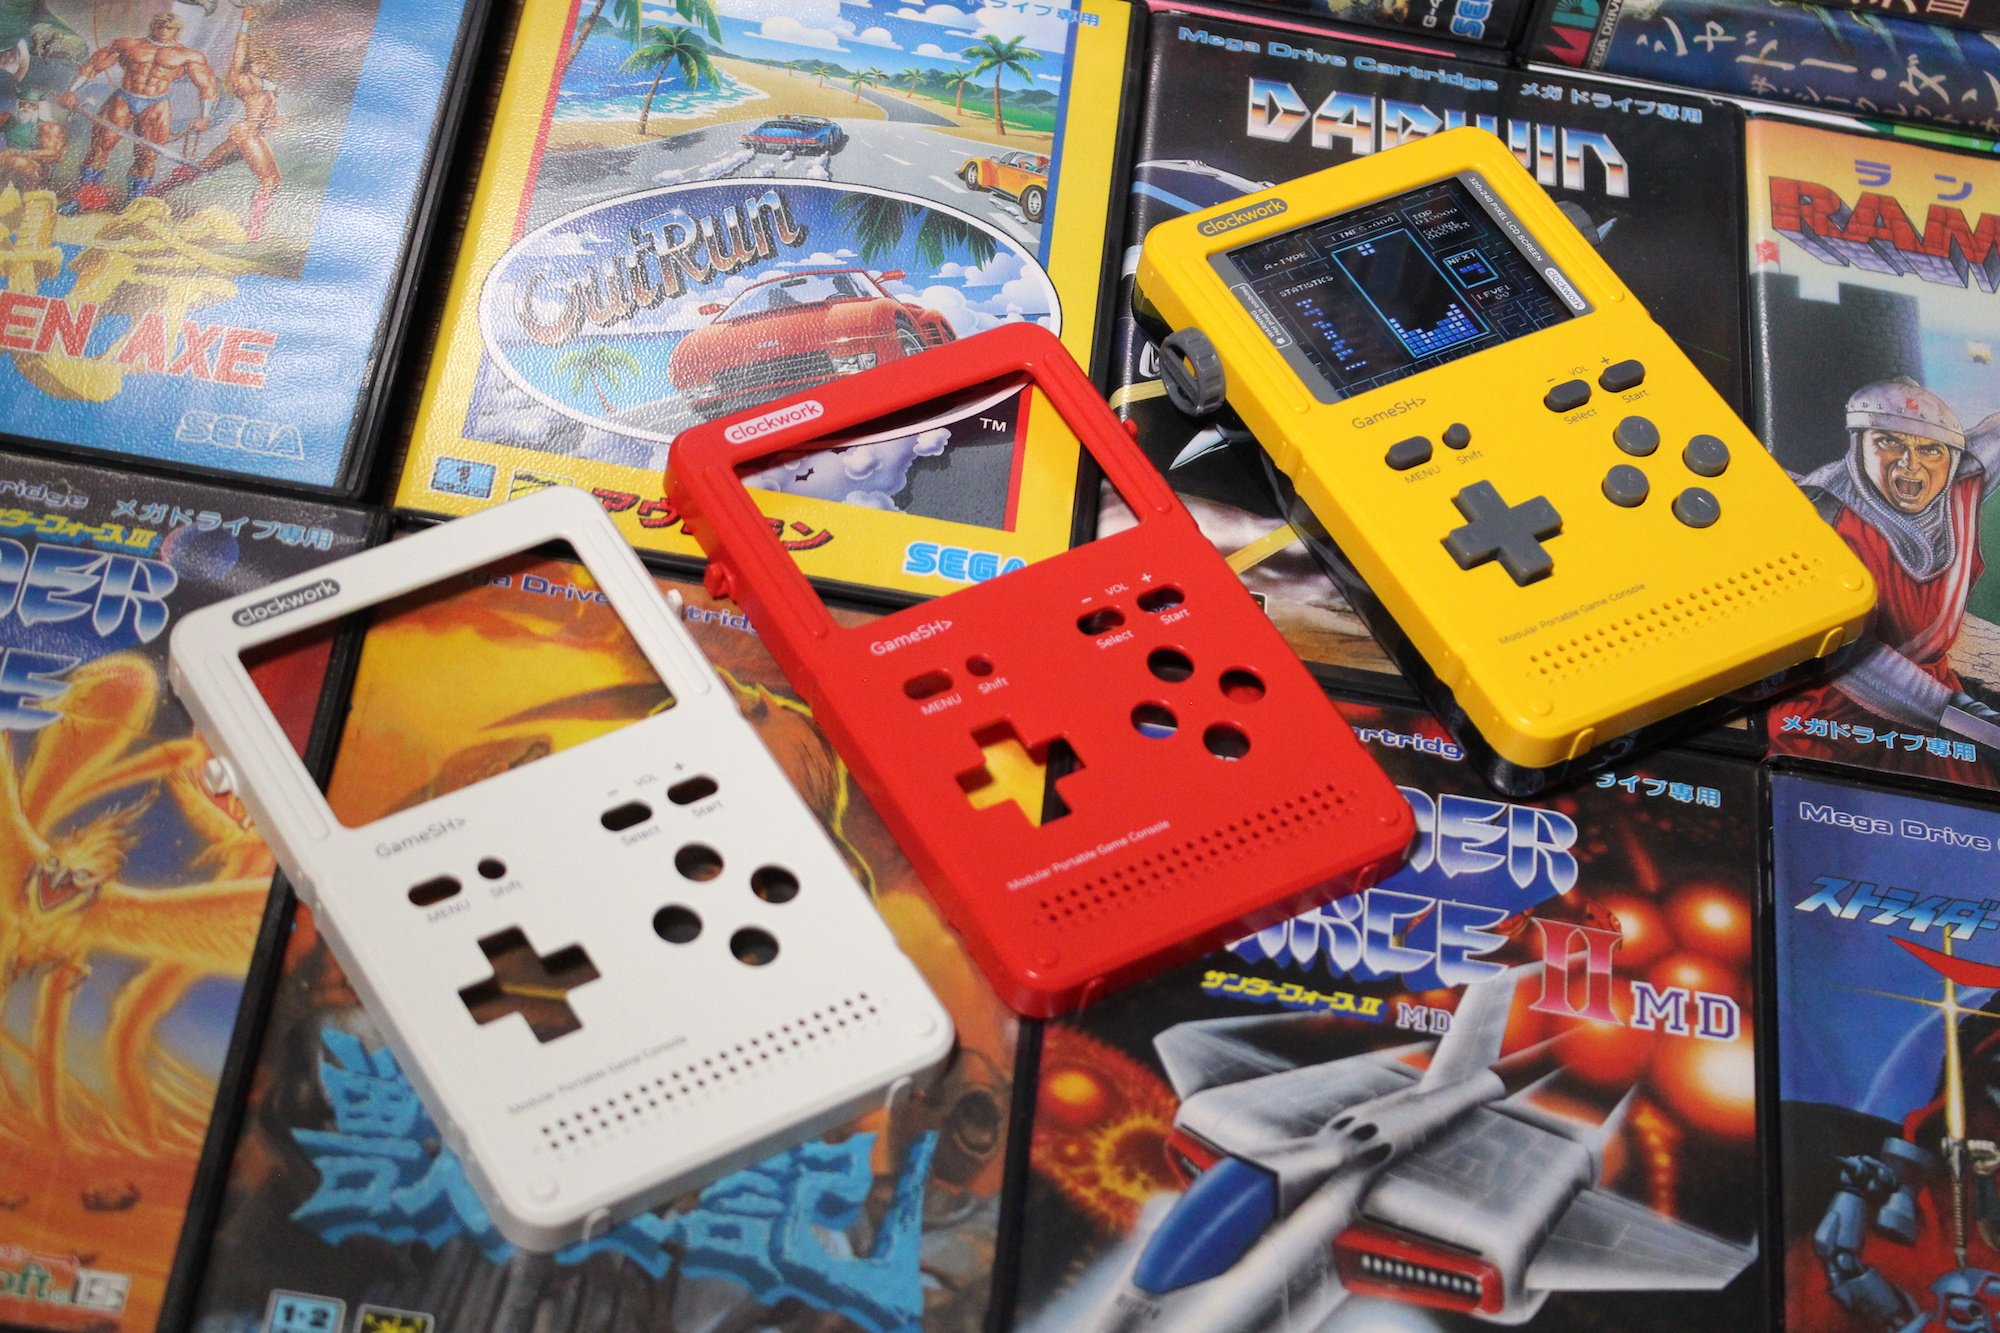 Hardware Review: GameShell Is A Modular And Hackable Take On The